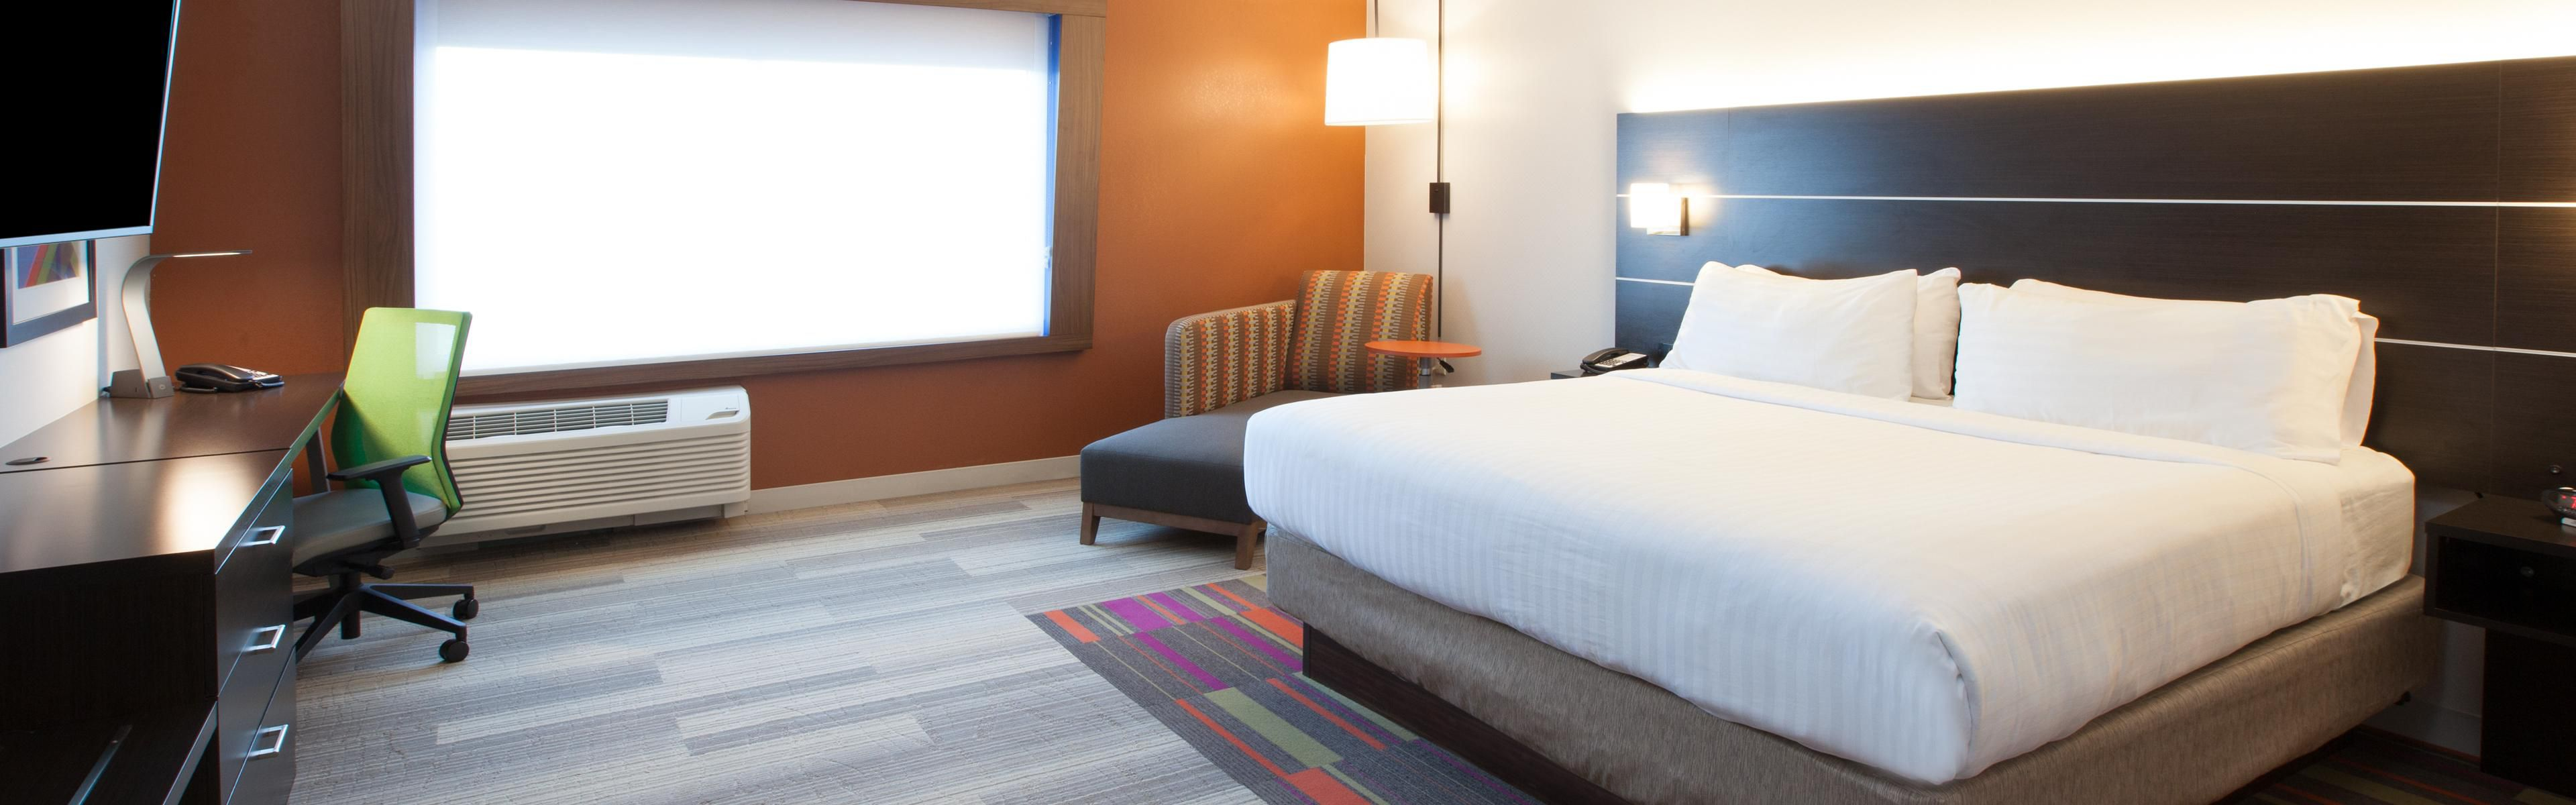 Holiday Inn Express & Suites Indianapolis NE - Noblesville image 1